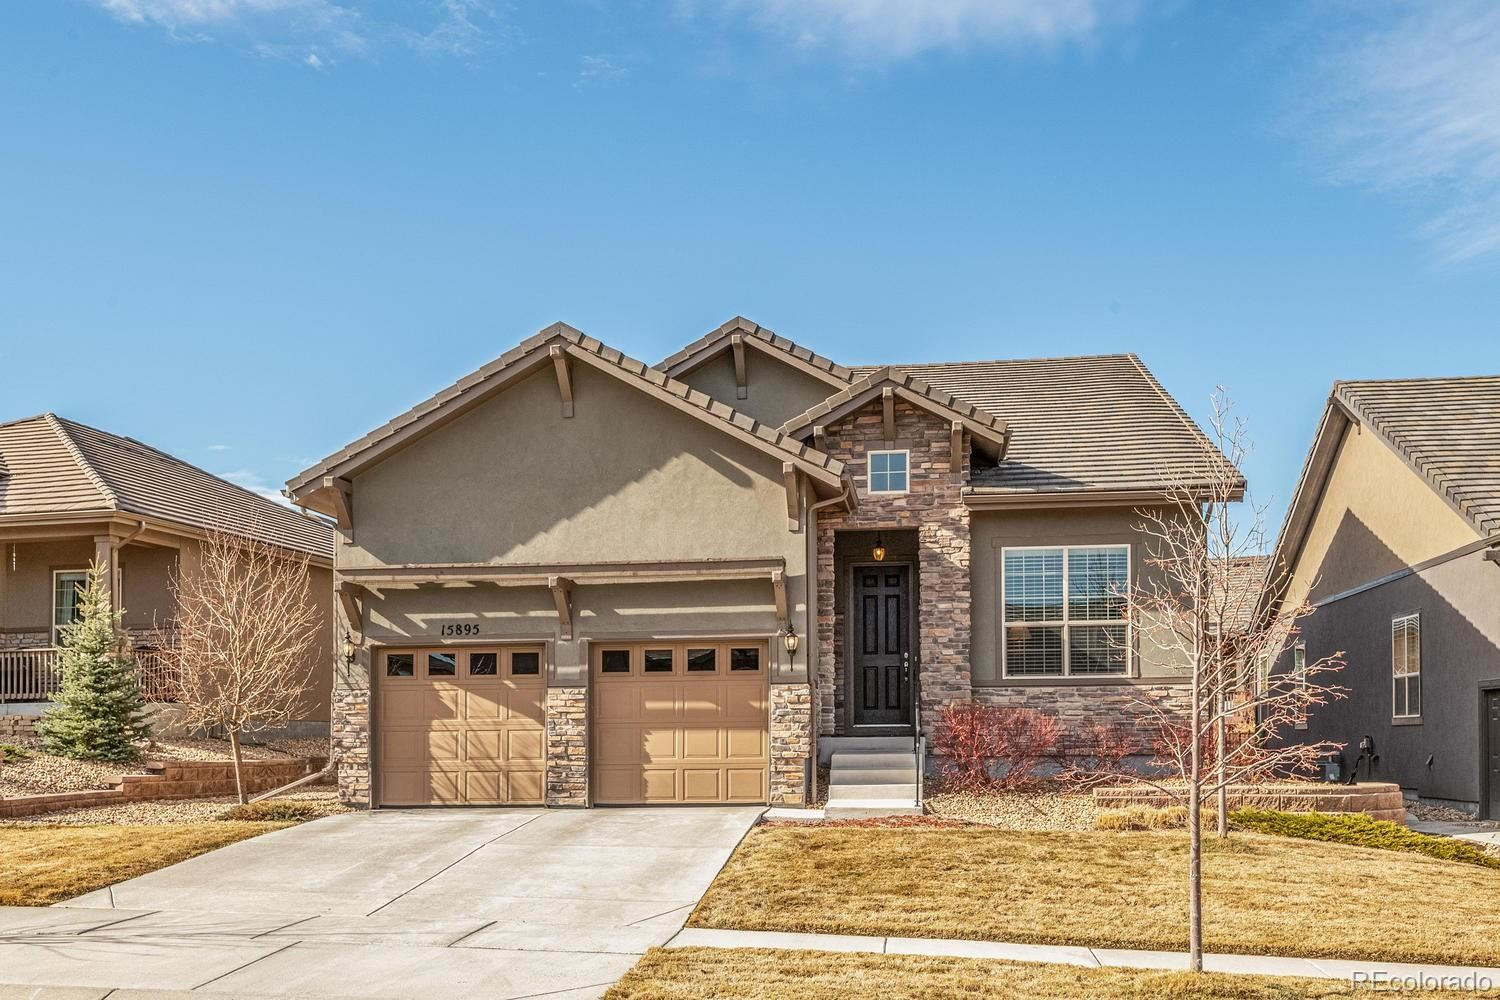 15895  Wild Horse Drive, Broomfield, CO 80023 - #: 8878612